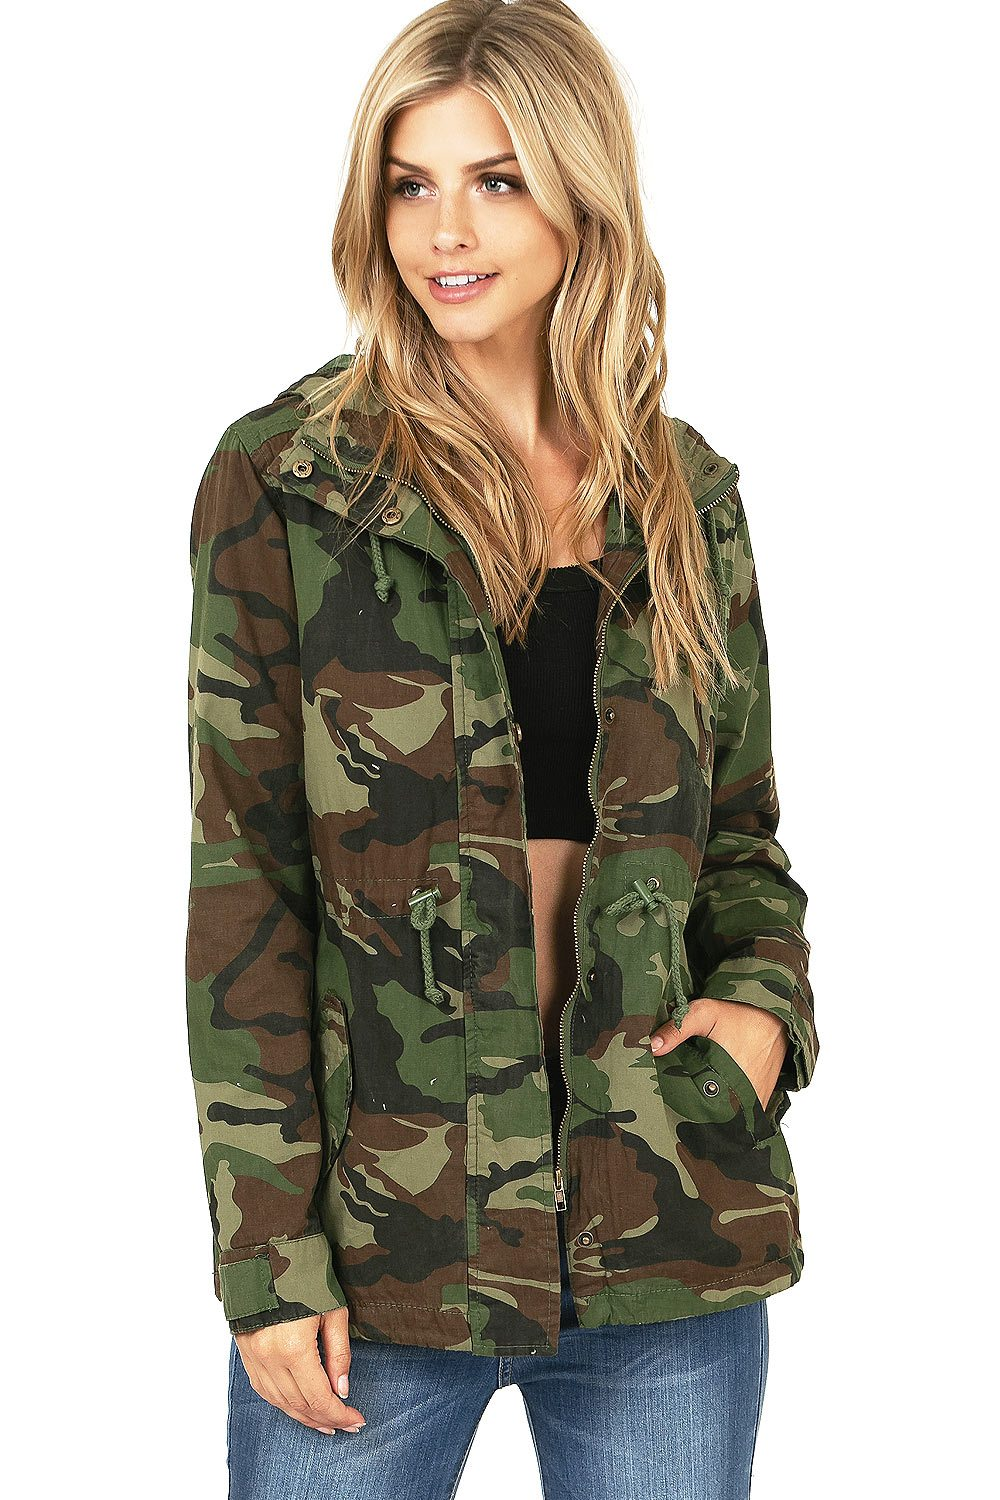 Ambiance Apparel Women's Cargo Style Camouflage Hooded Jacket (S)